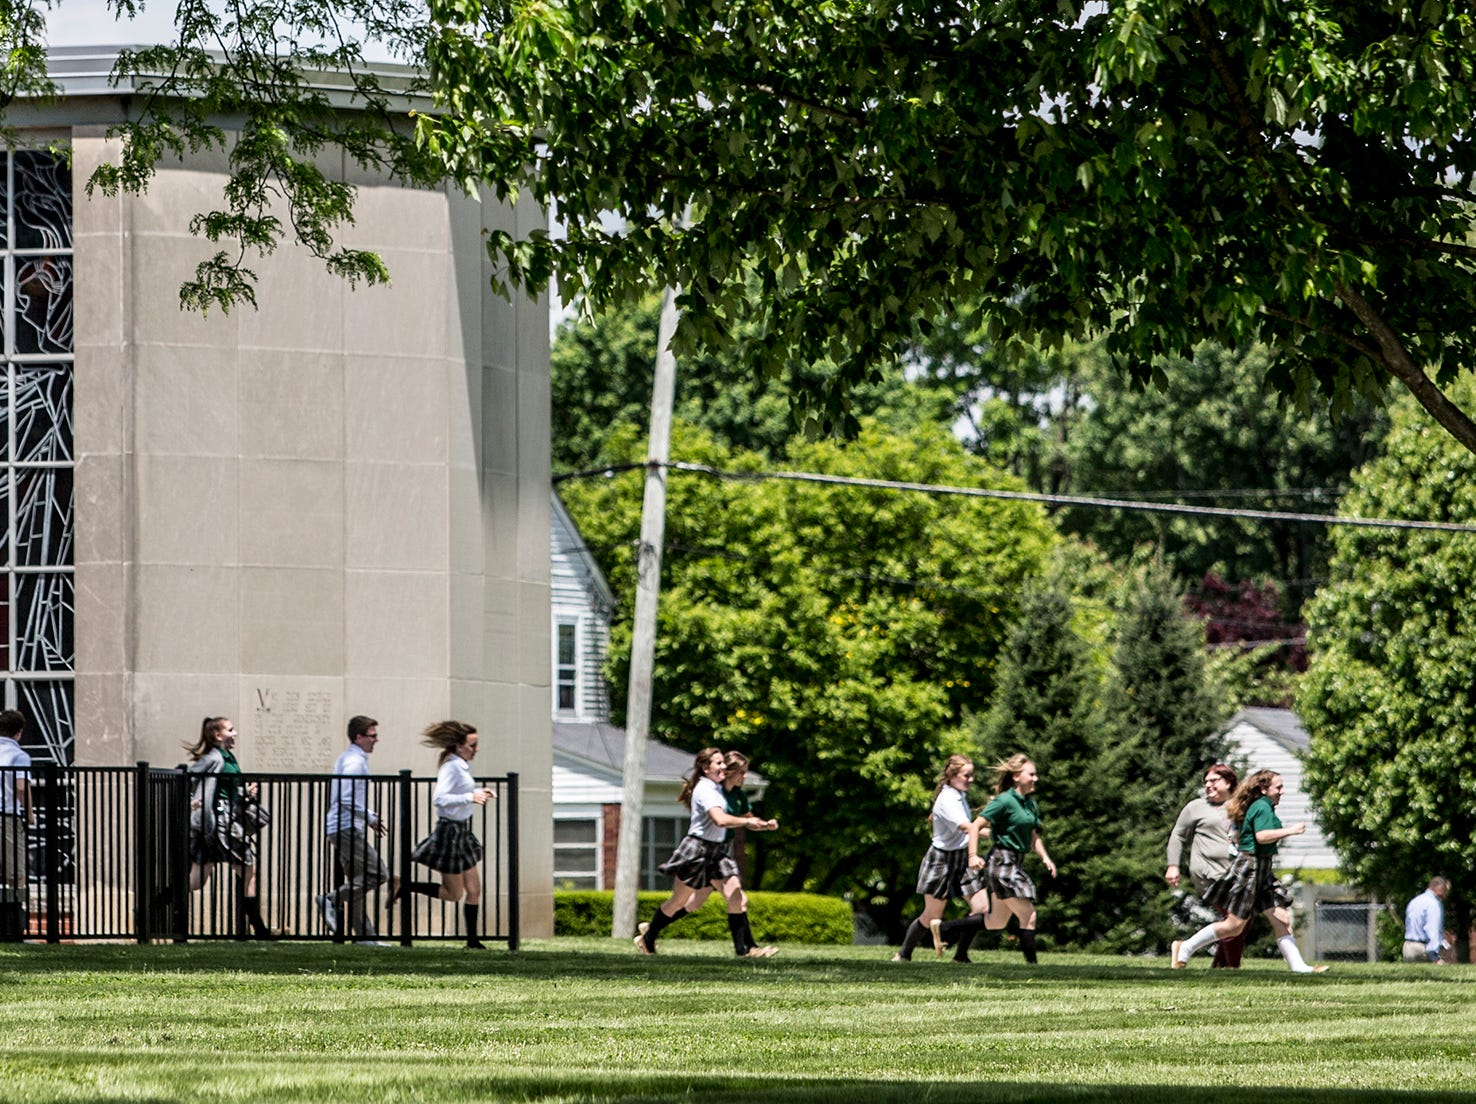 Newark Catholic students run from their school to Wilson Middle School during an active shooter drill Wednesday afternoon.